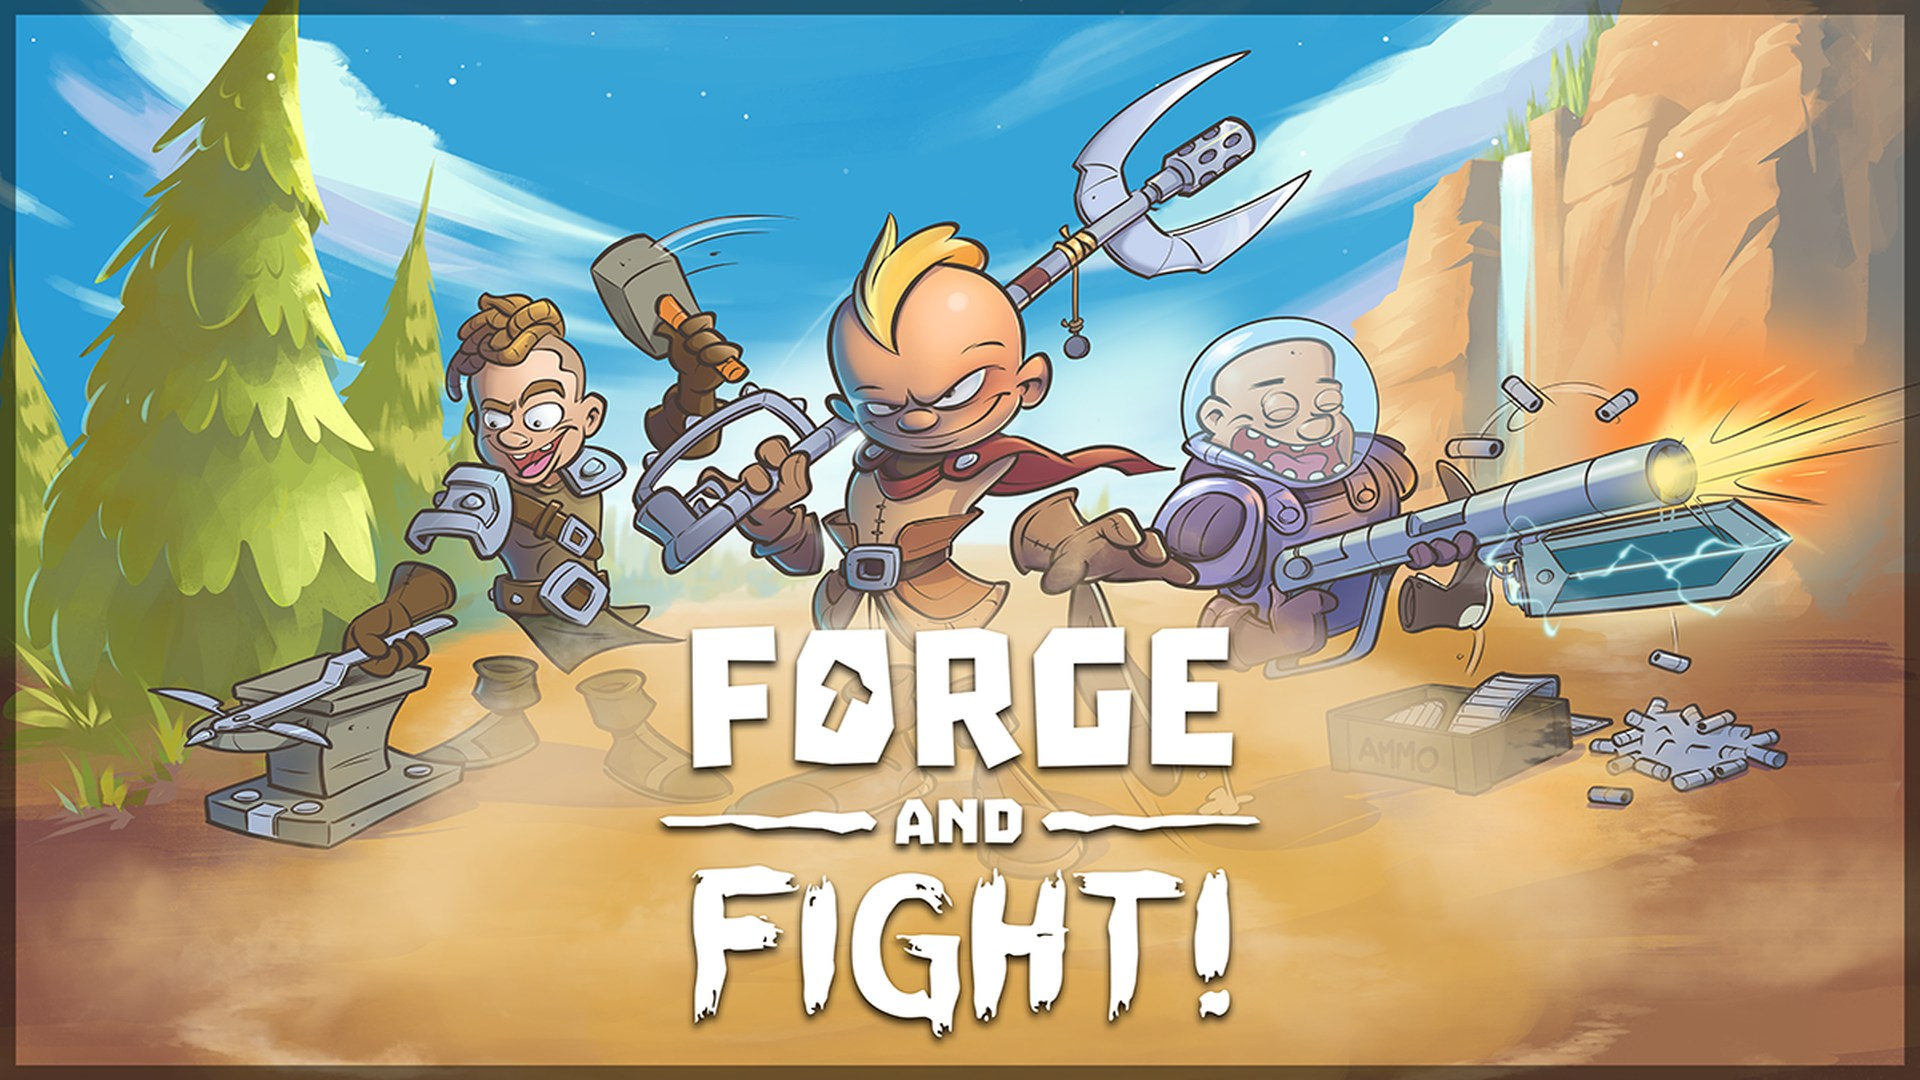 Forge and Fight! | Flamebait Games